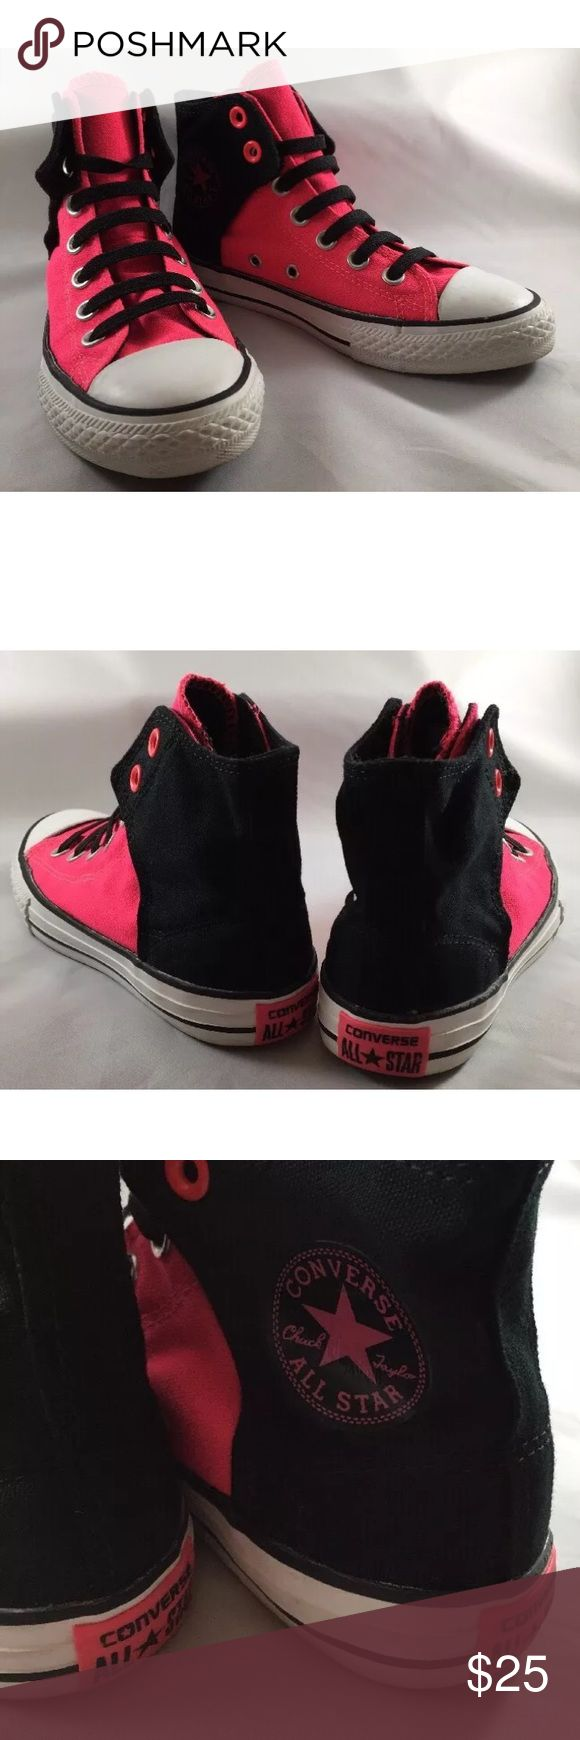 Girls converse high top pink black sneakers Converse all stars - very gently used shoes - big girl size 2 - Velcro Converse Shoes Sneakers